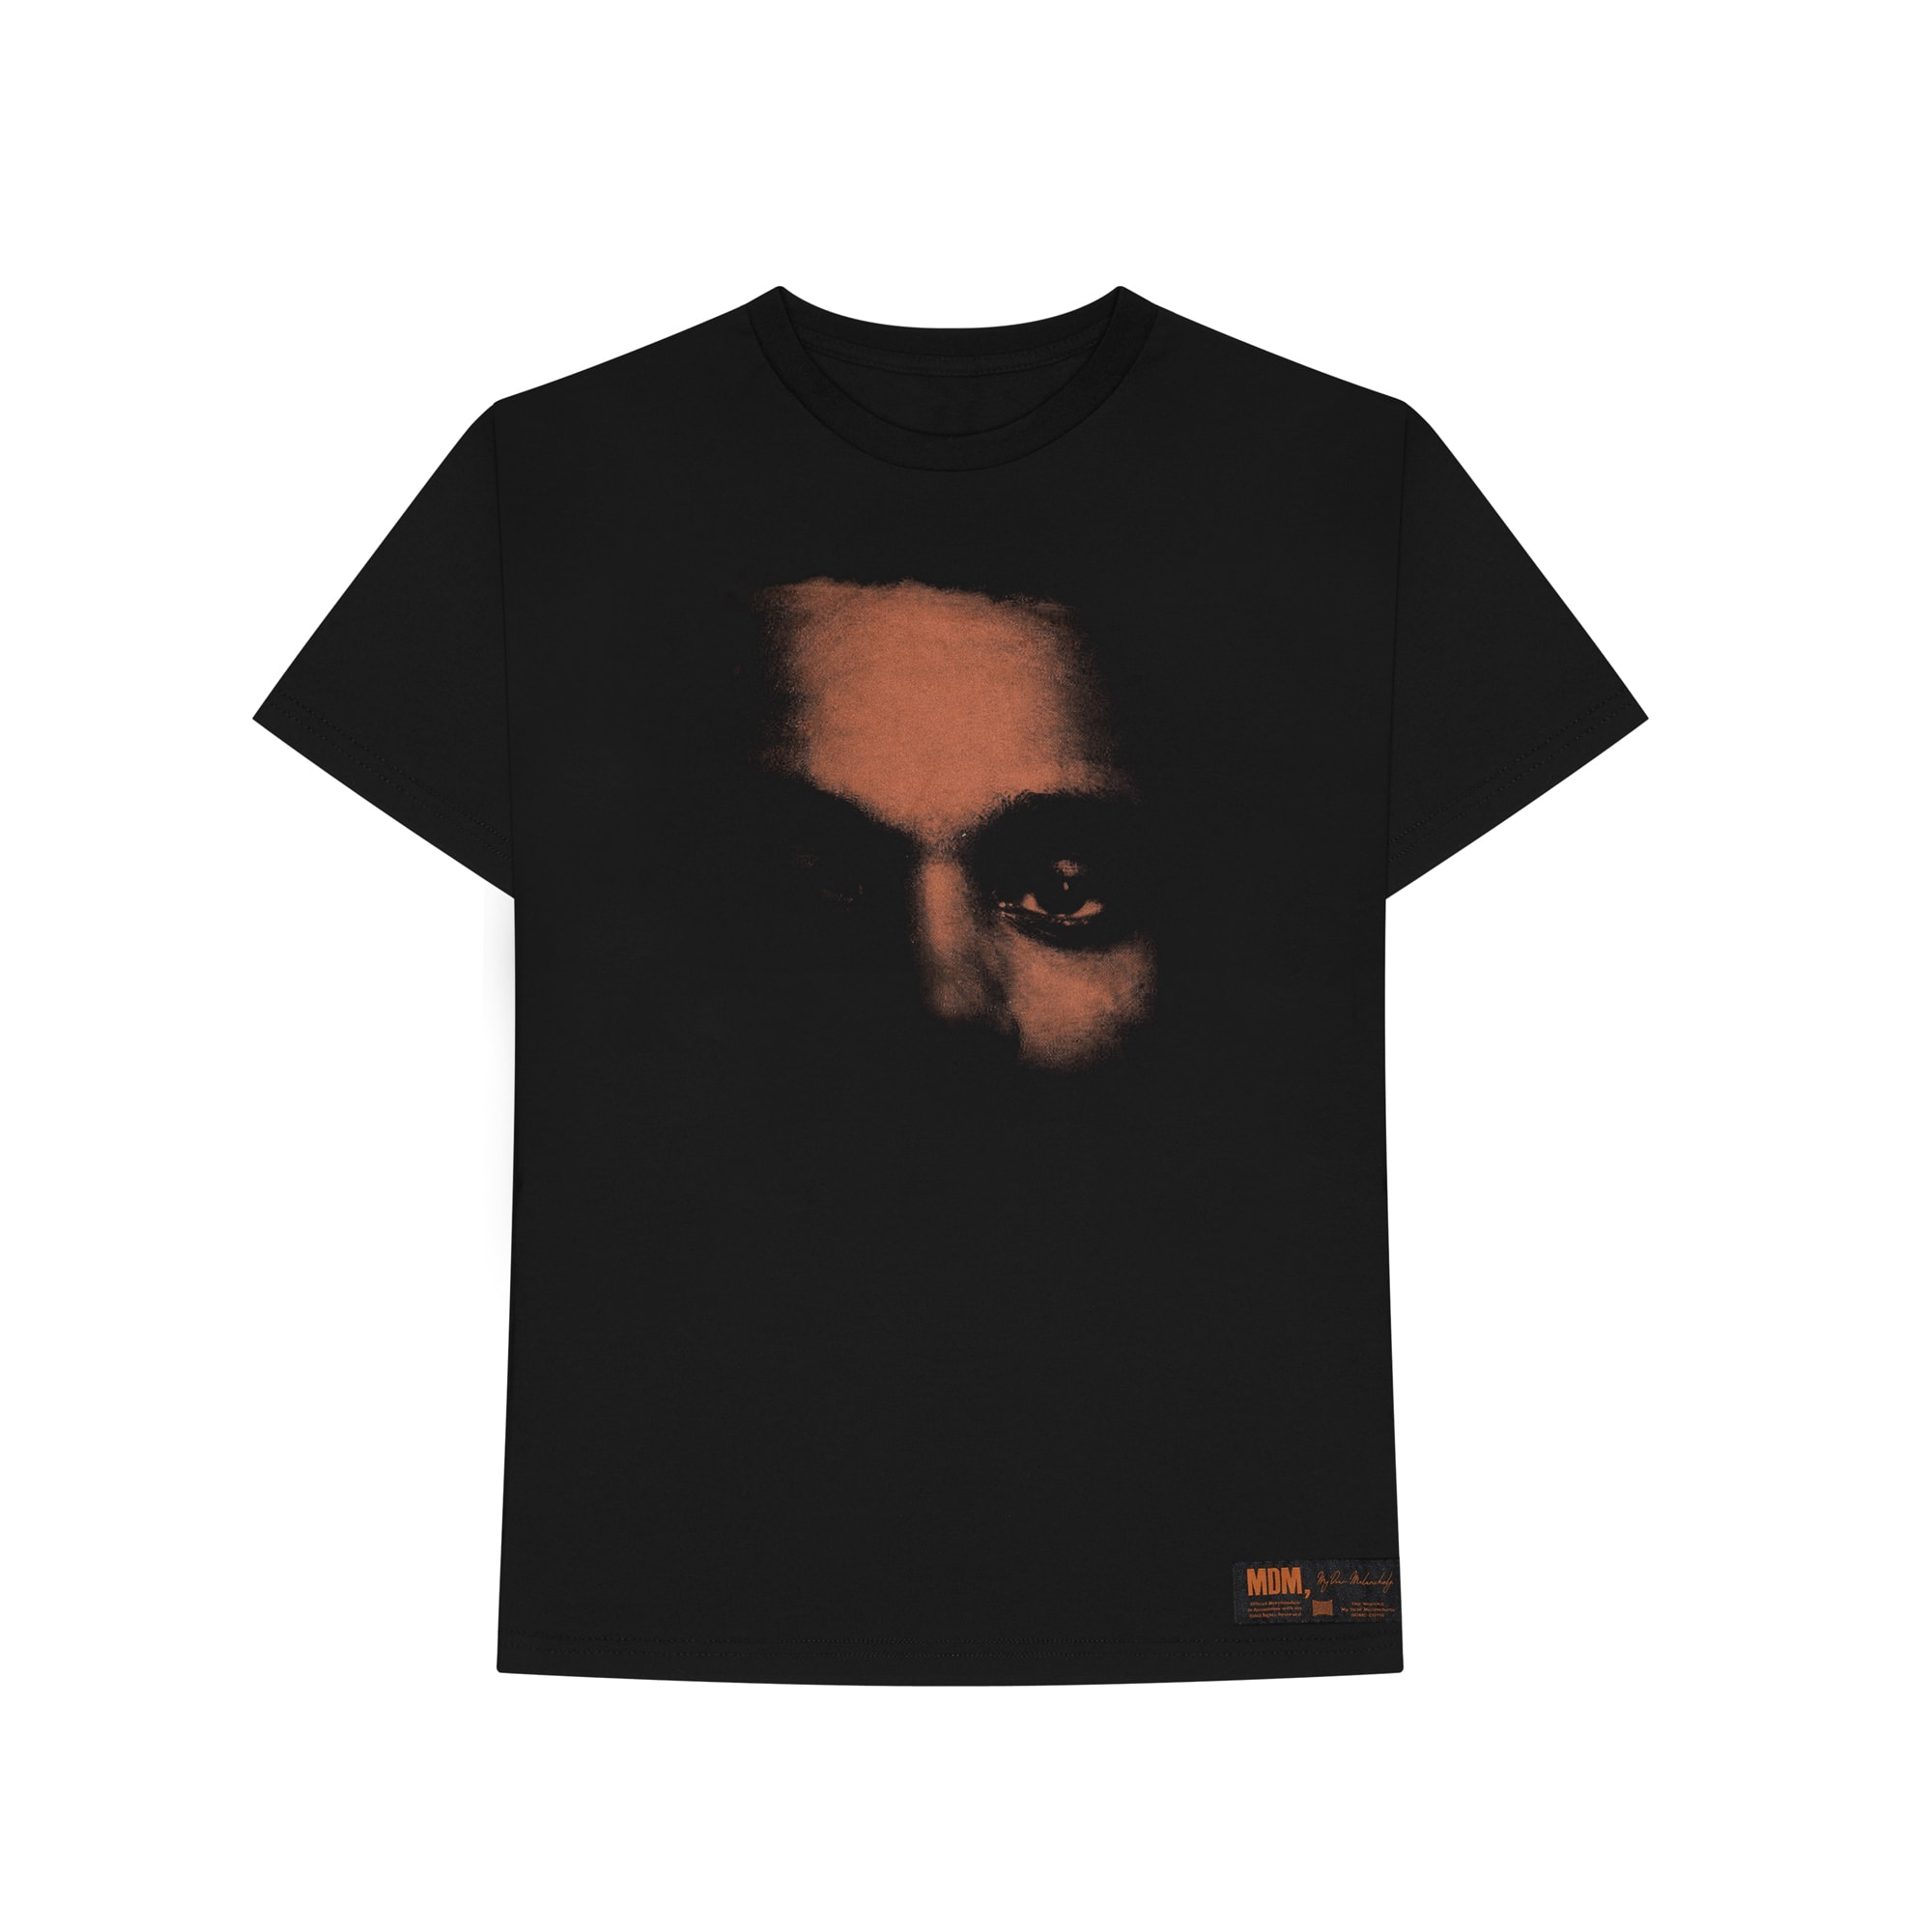 The Weeknd's 'My Dear Melancholy' cover t-shirt.